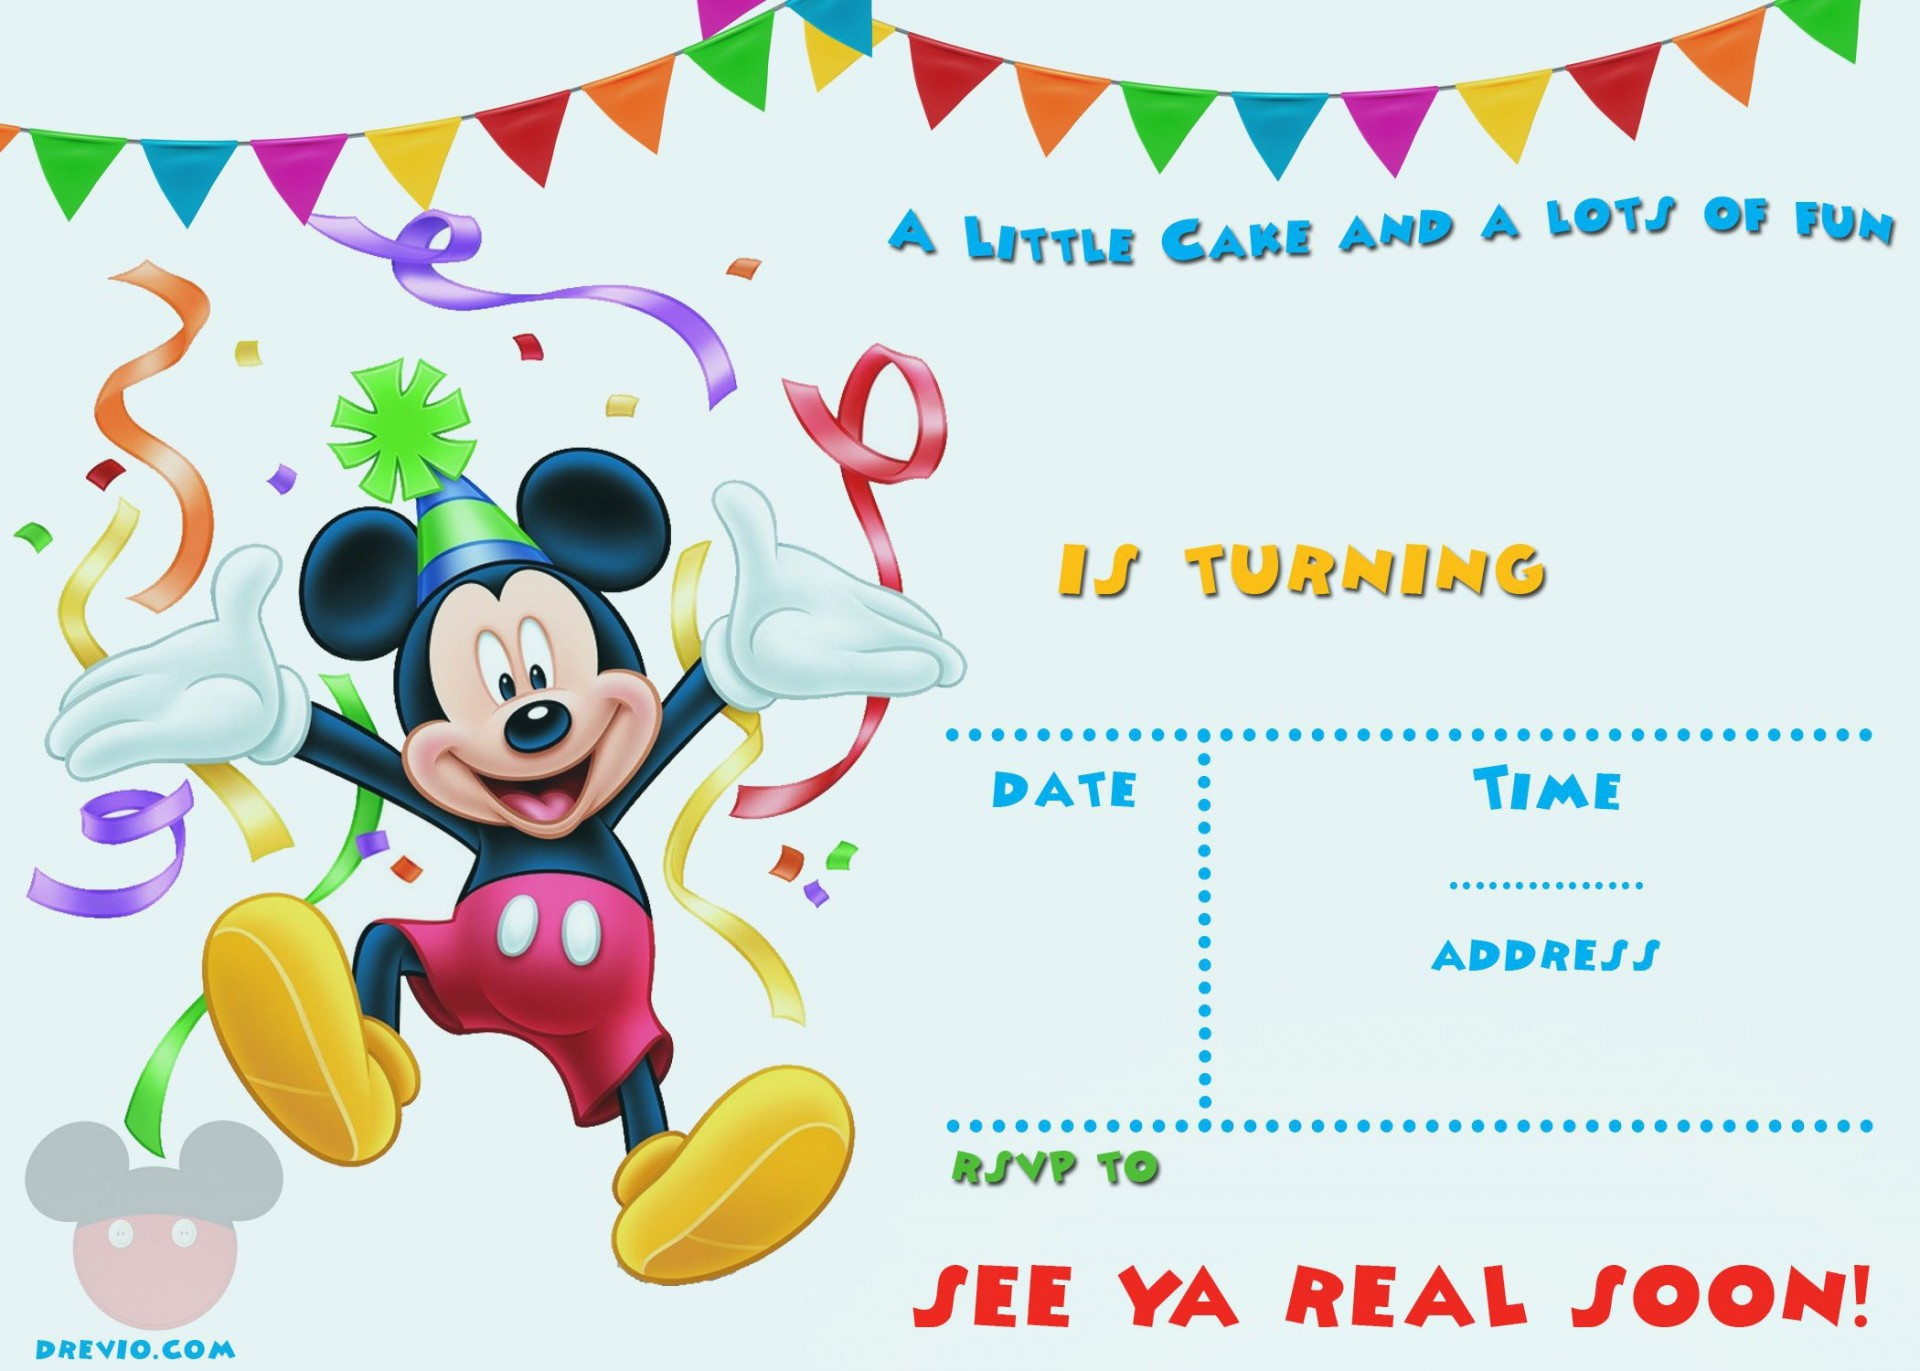 004 Incredible Mickey Mouse Invitation Template High Resolution  Templates Clubhouse Birthday Free 1st Download1920